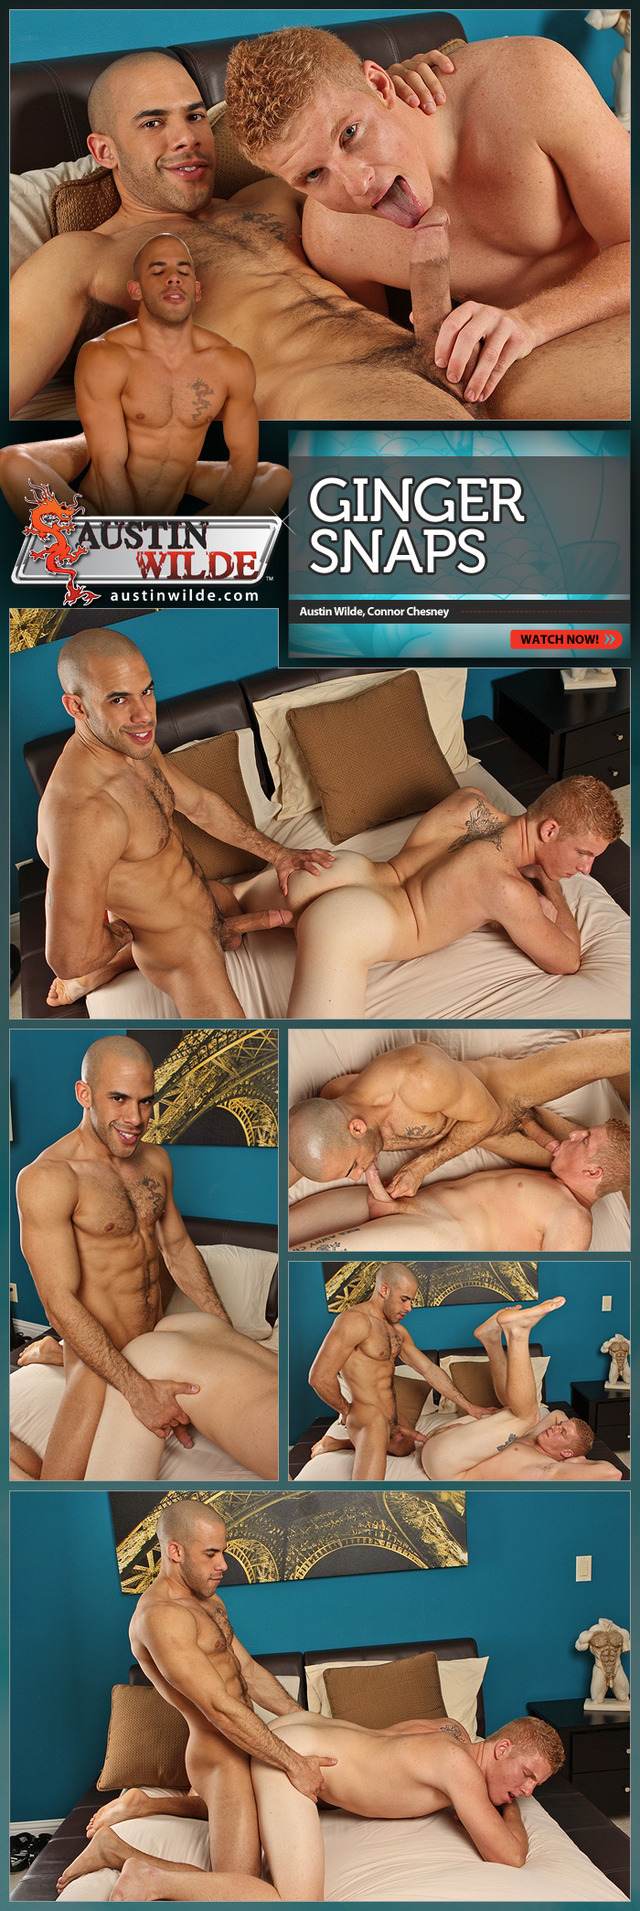 Austin Wilde Porn hunks austin wilde ginger connor chesney snaps